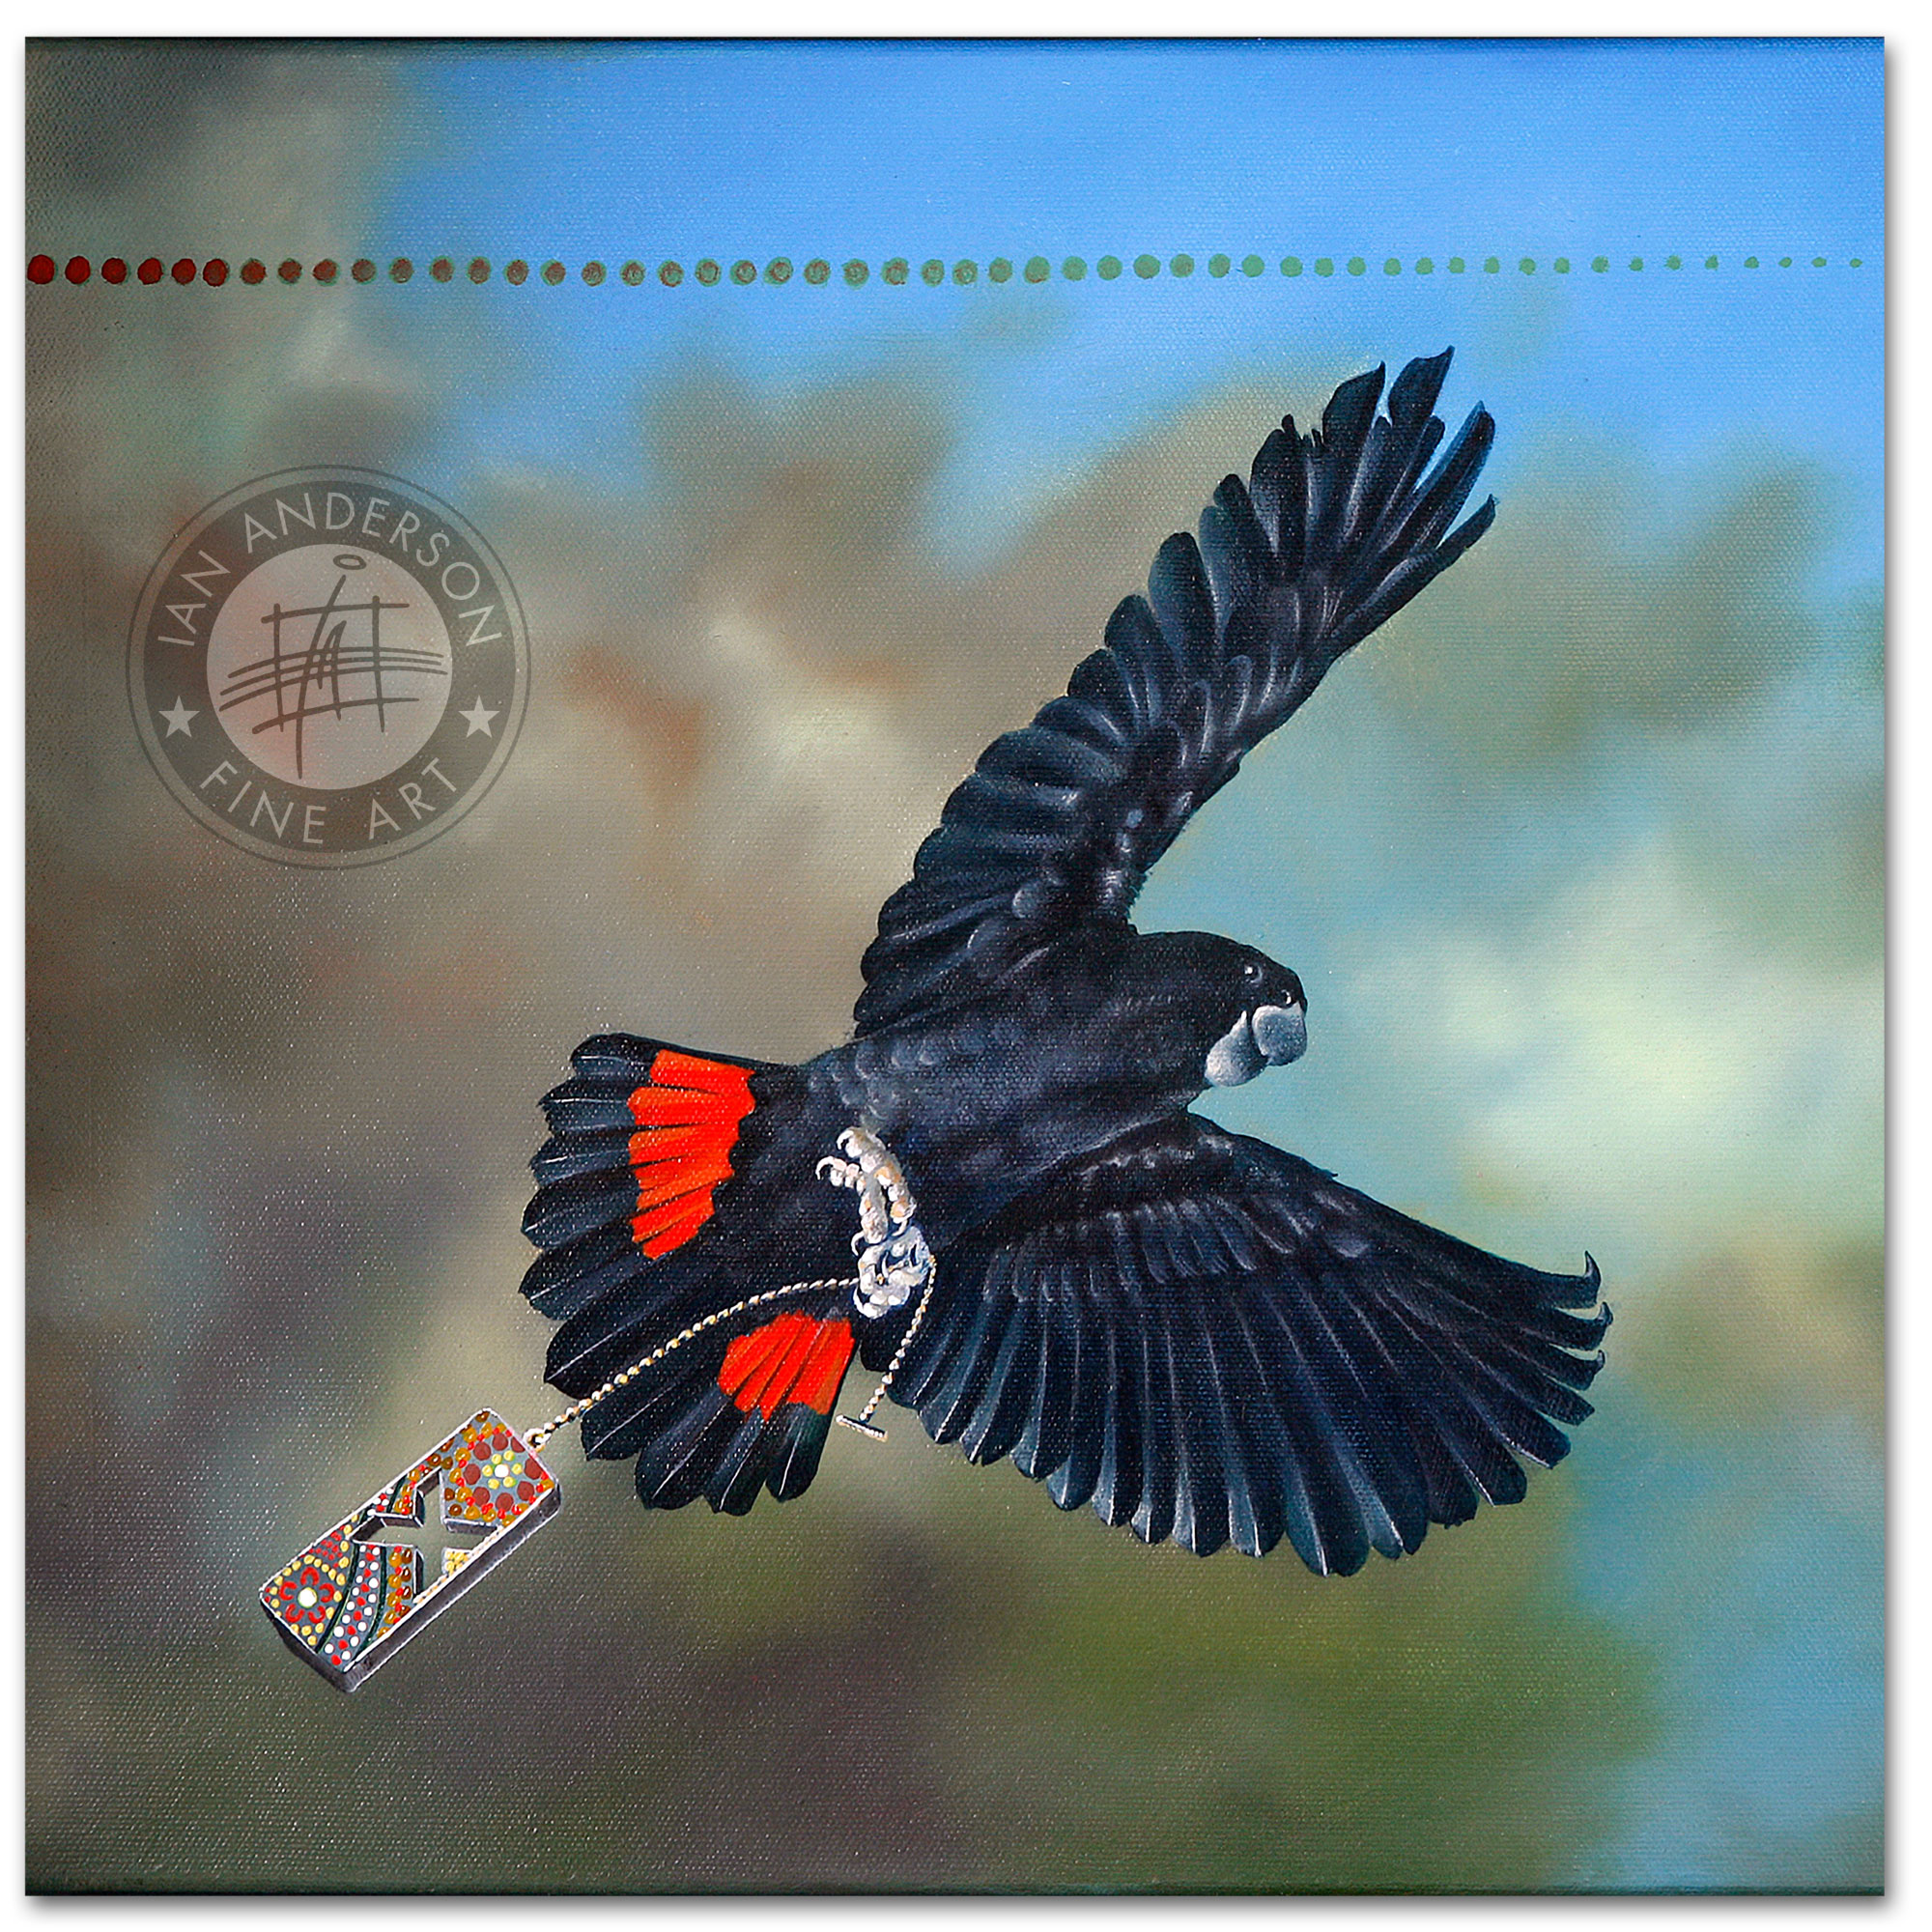 Red Tail Black Cockatoo indigenous close up 1 - Original Oil Painting on gesso primed canvas